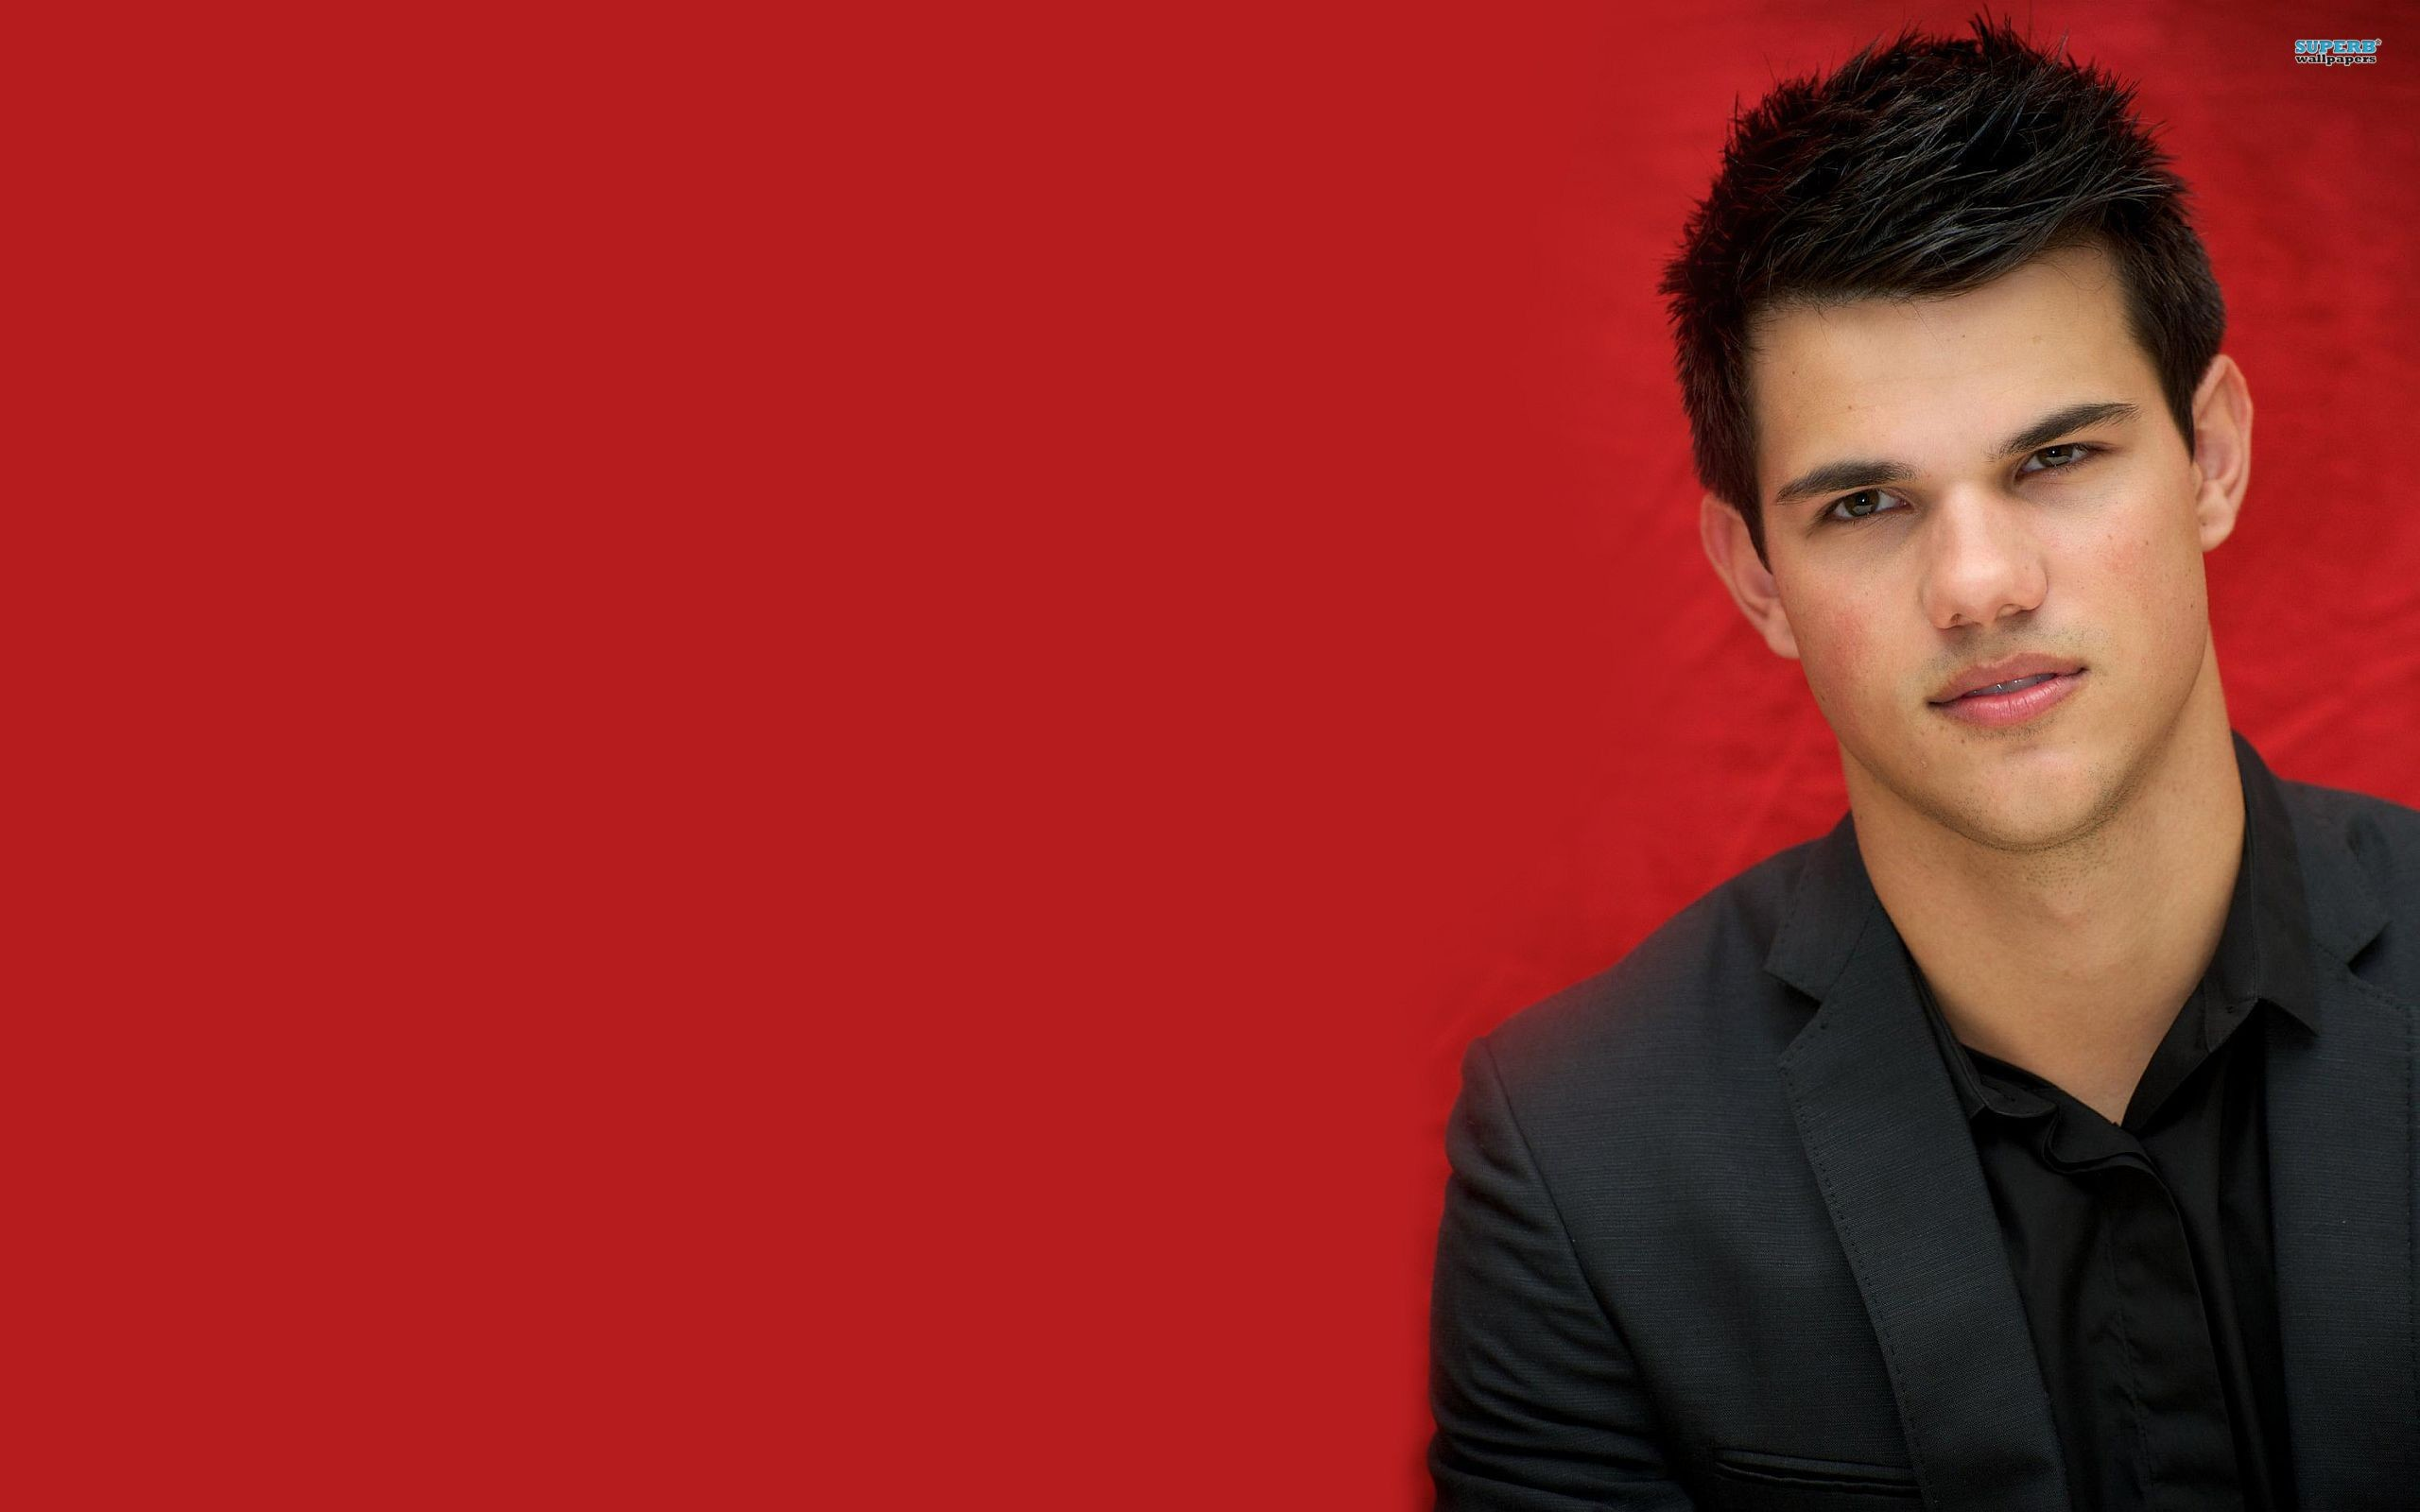 2560x1600 Taylor Lautner Wallpapers For Computer - Wallpaper Cave